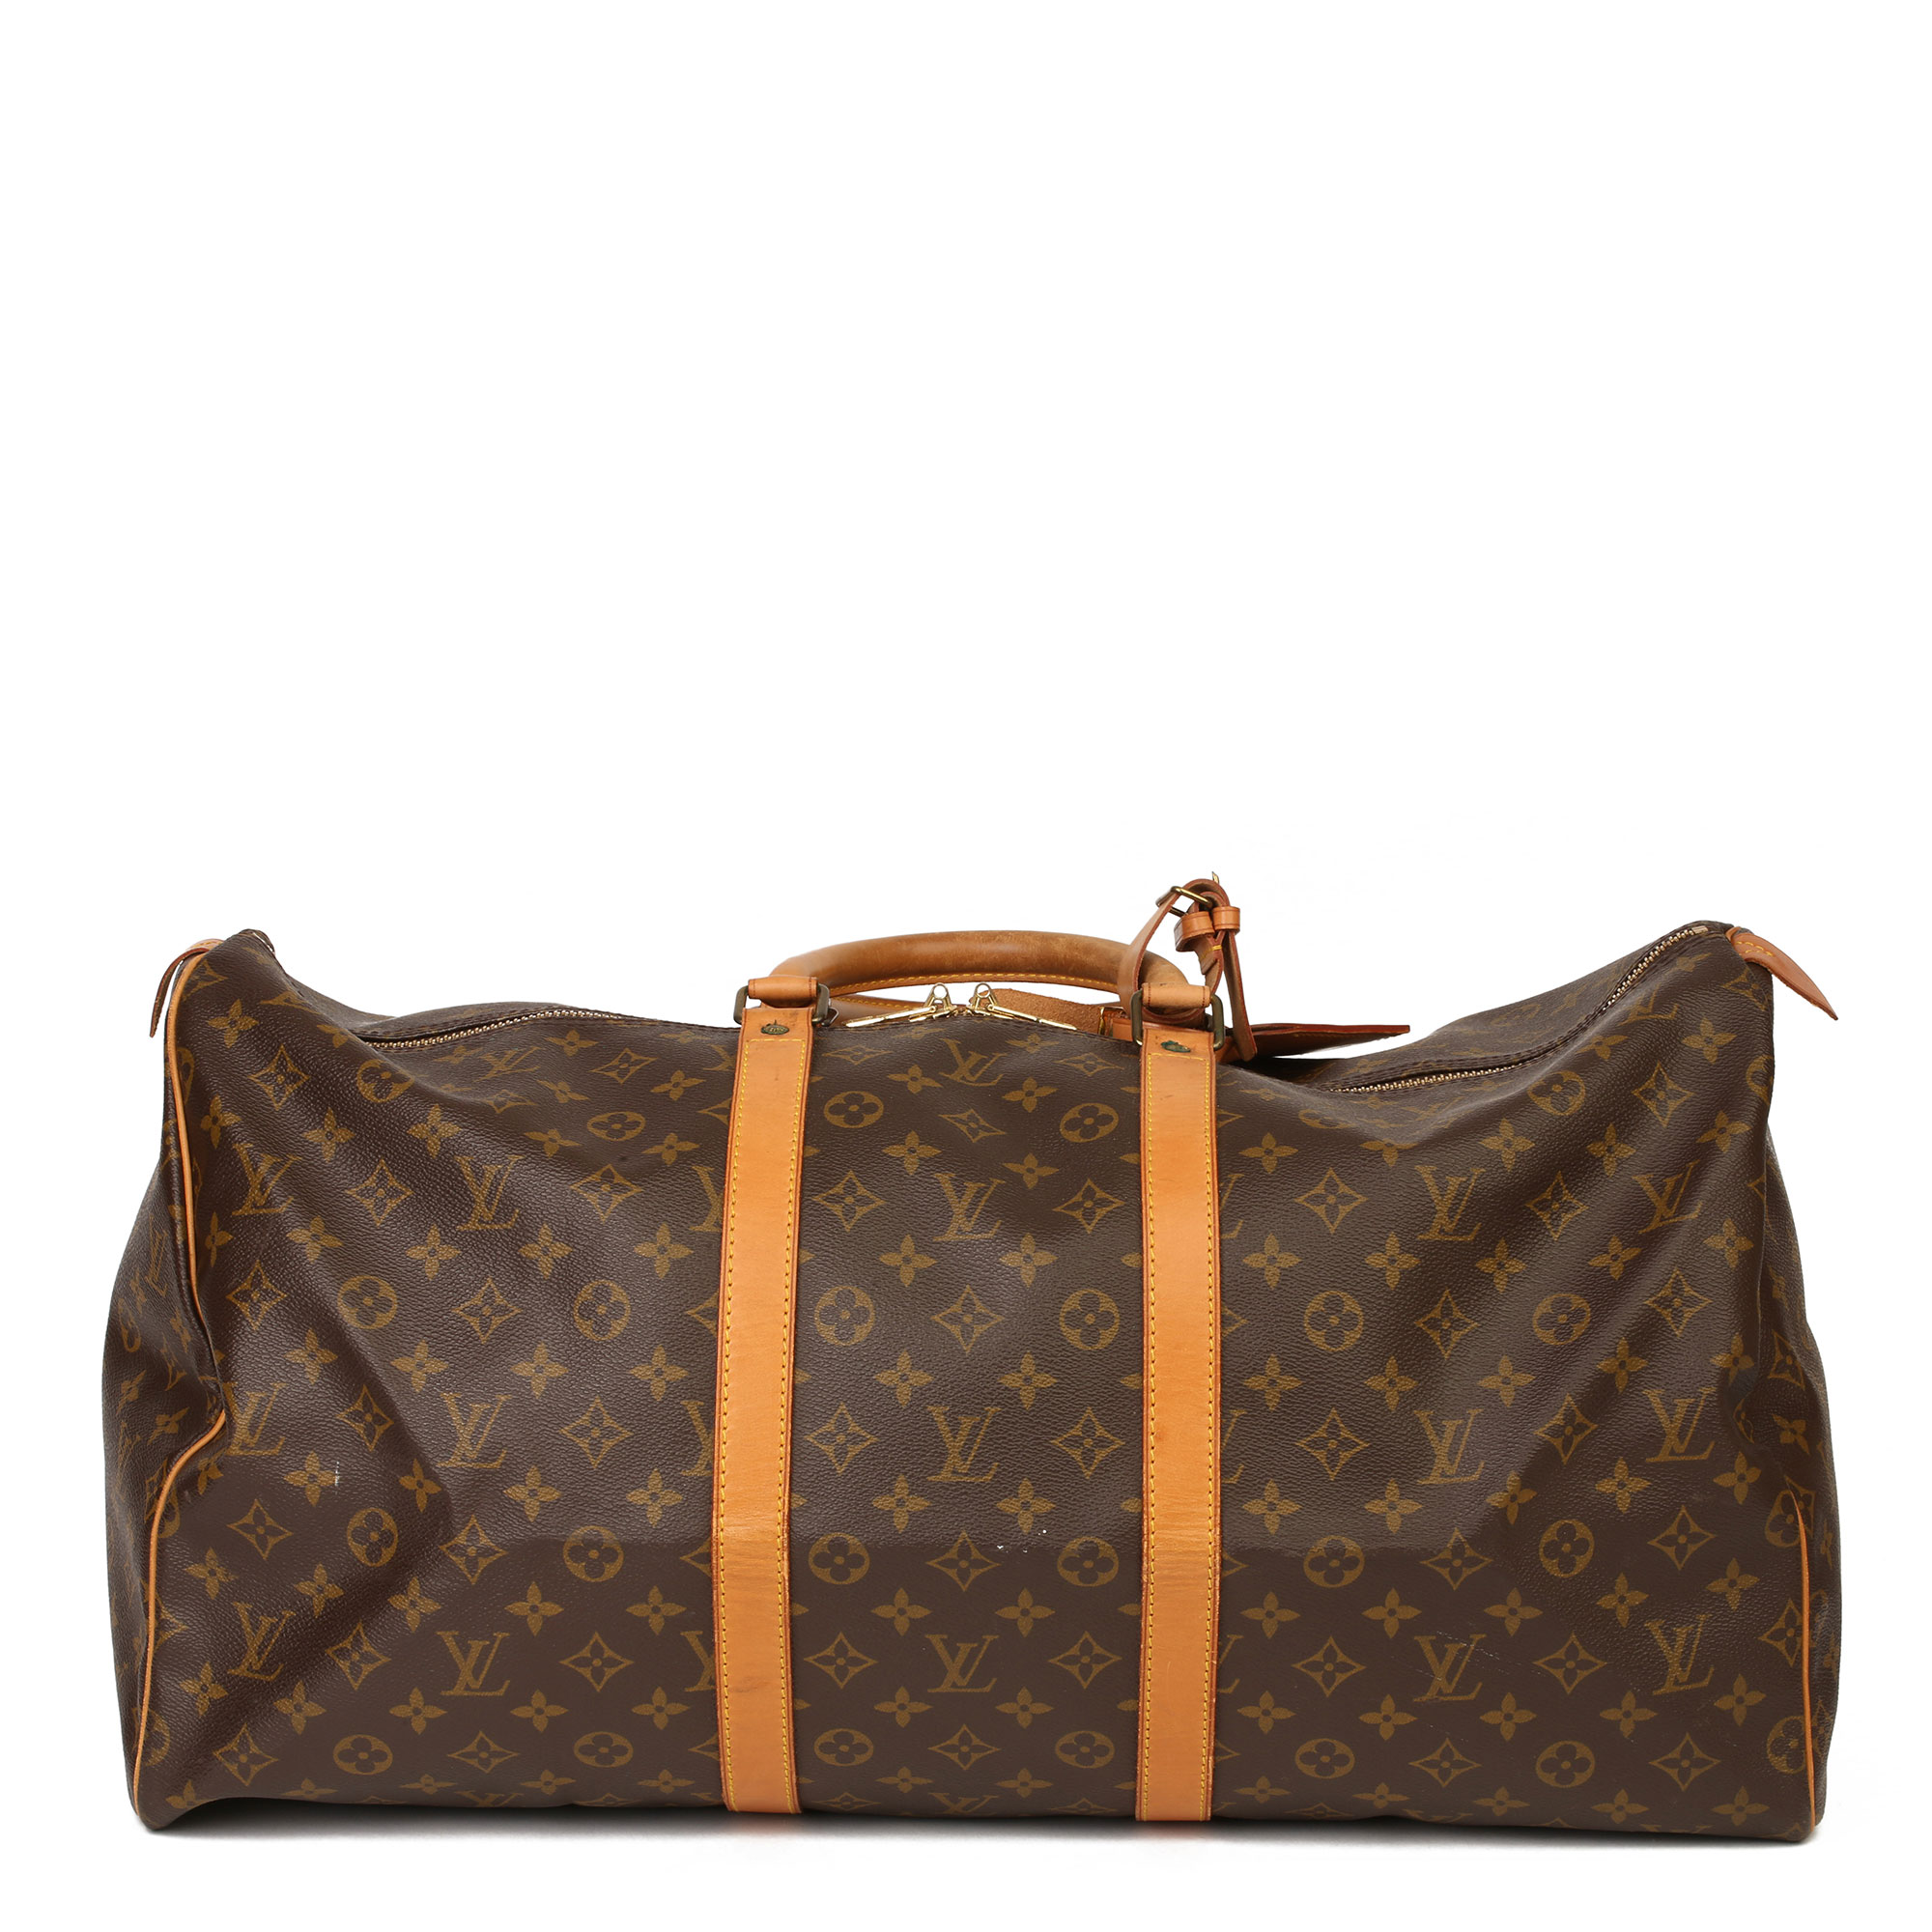 Louis Vuitton Brown Monogram Coated Canvas & Vachetta Leather Vintage Keepall 55 - Image 12 of 14